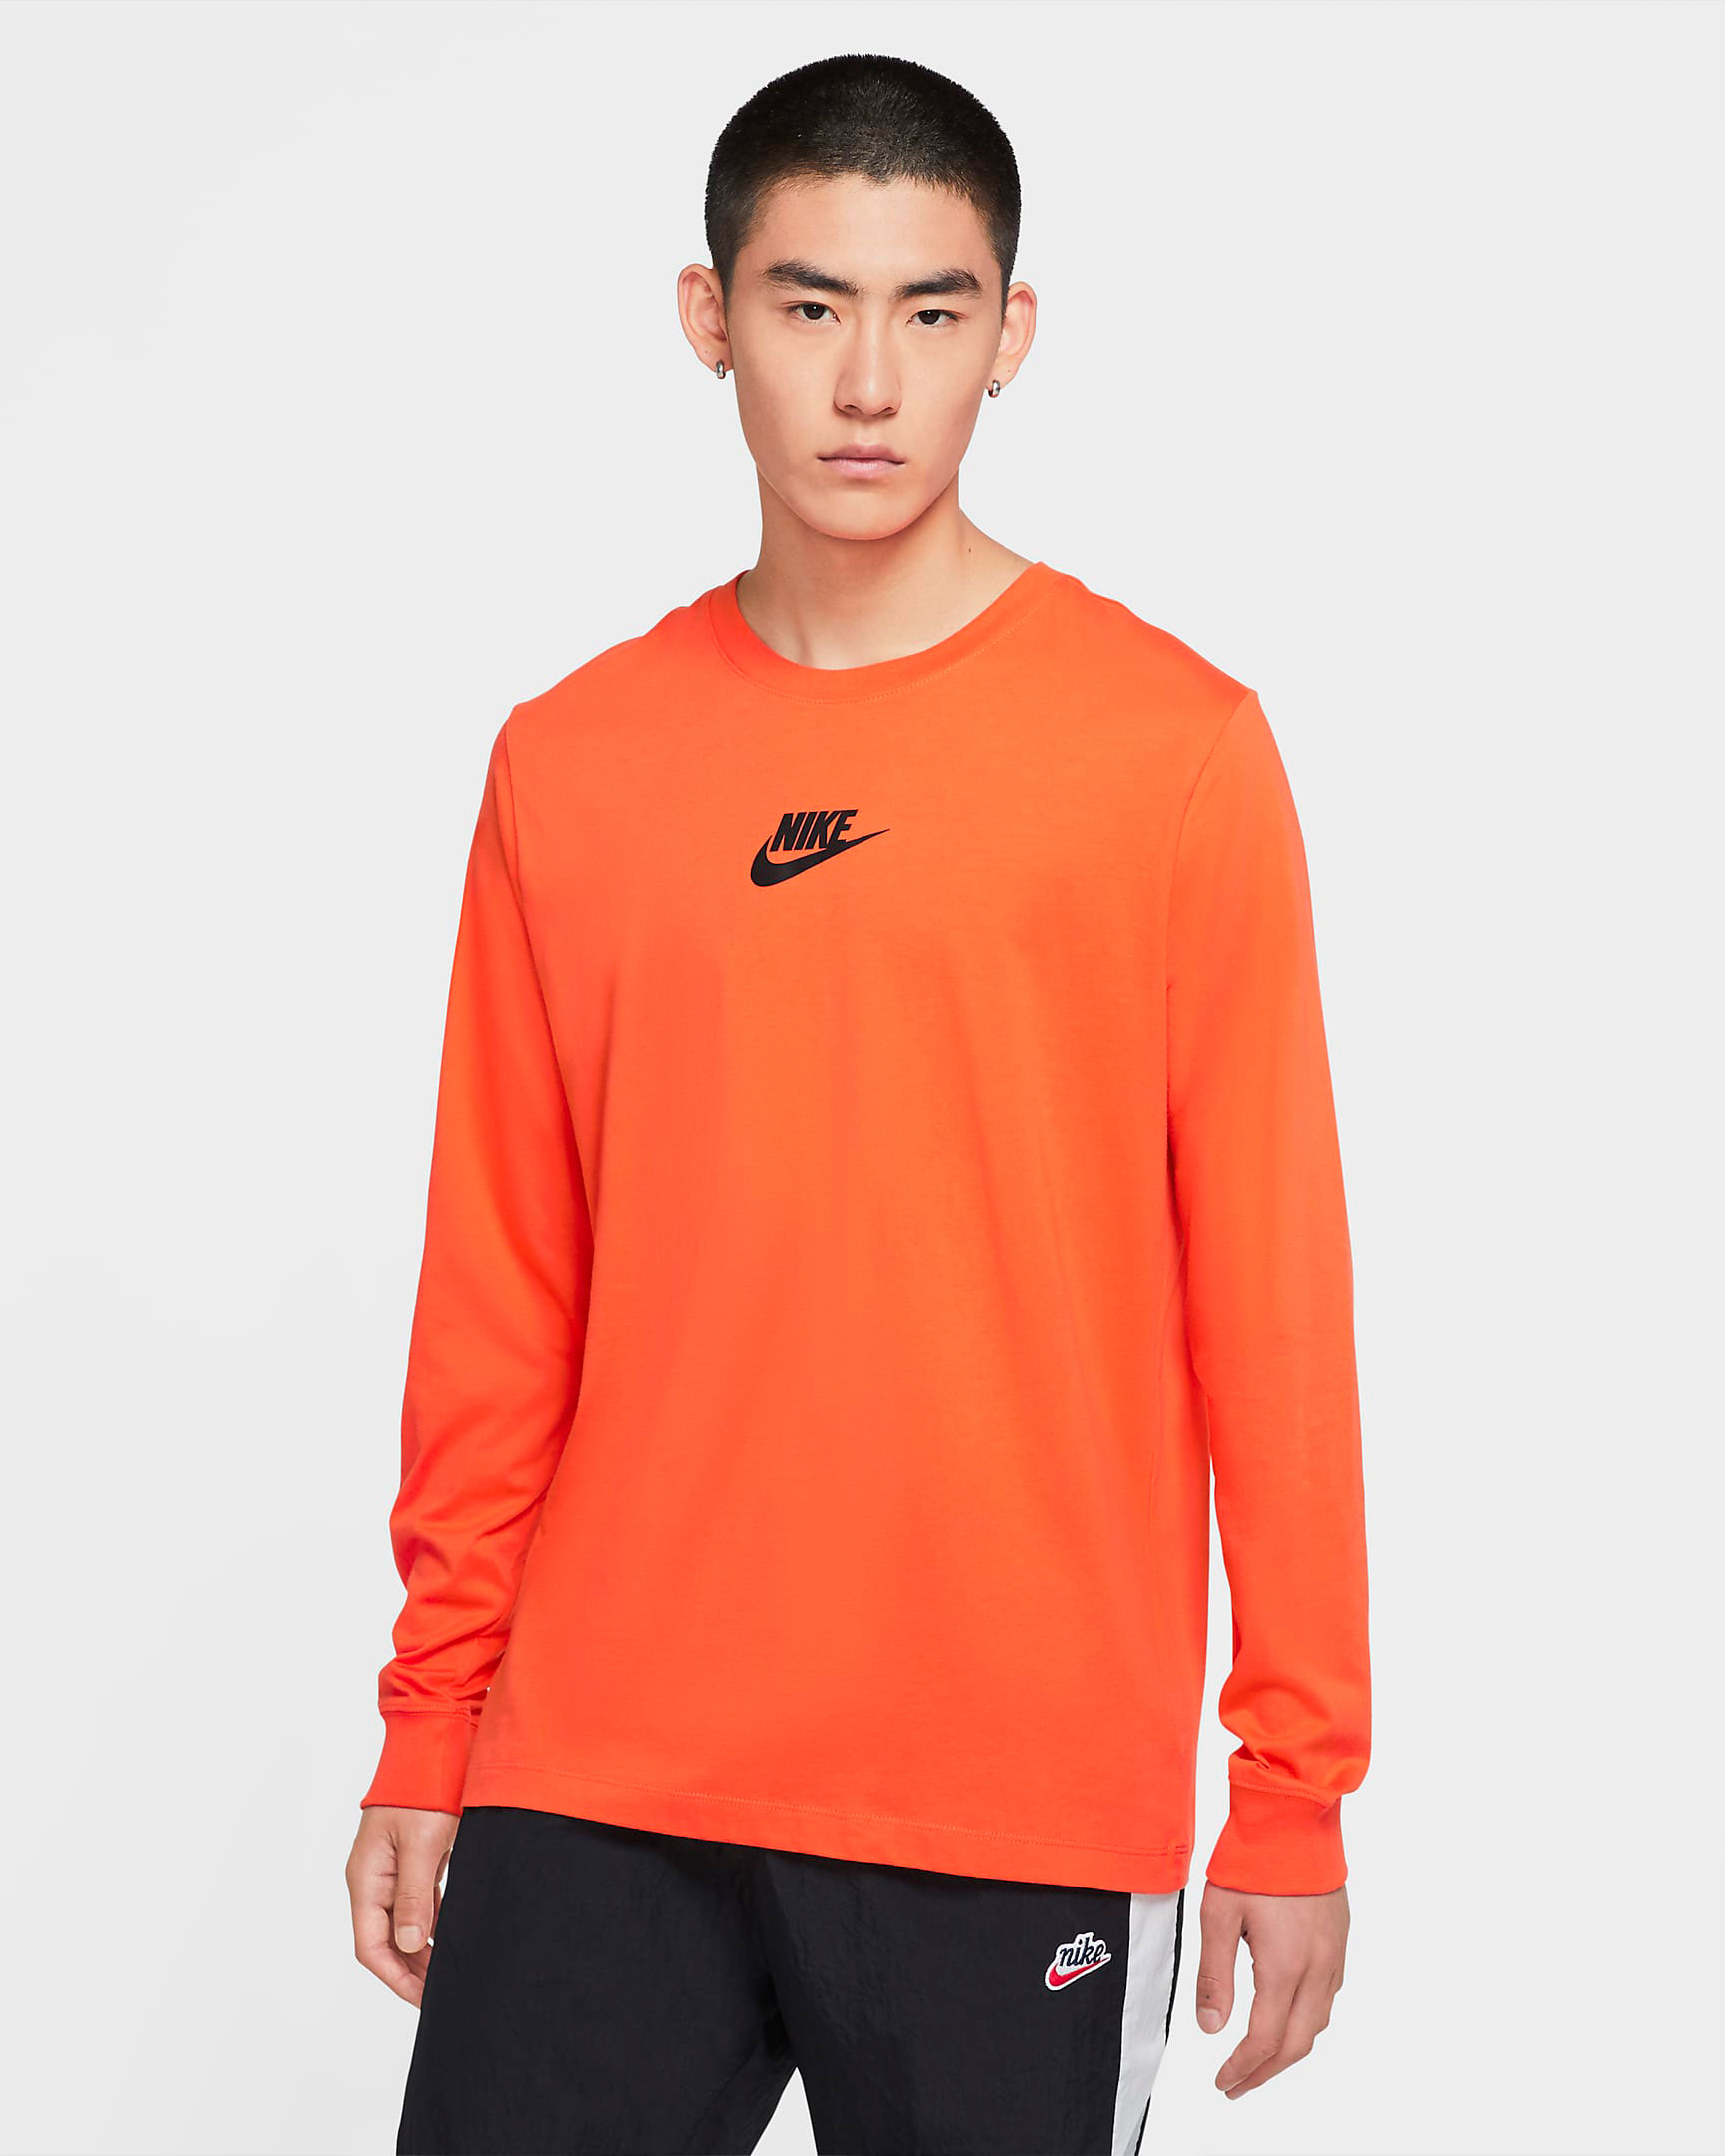 nike-jdi-long-sleeve-shirt-orange-1